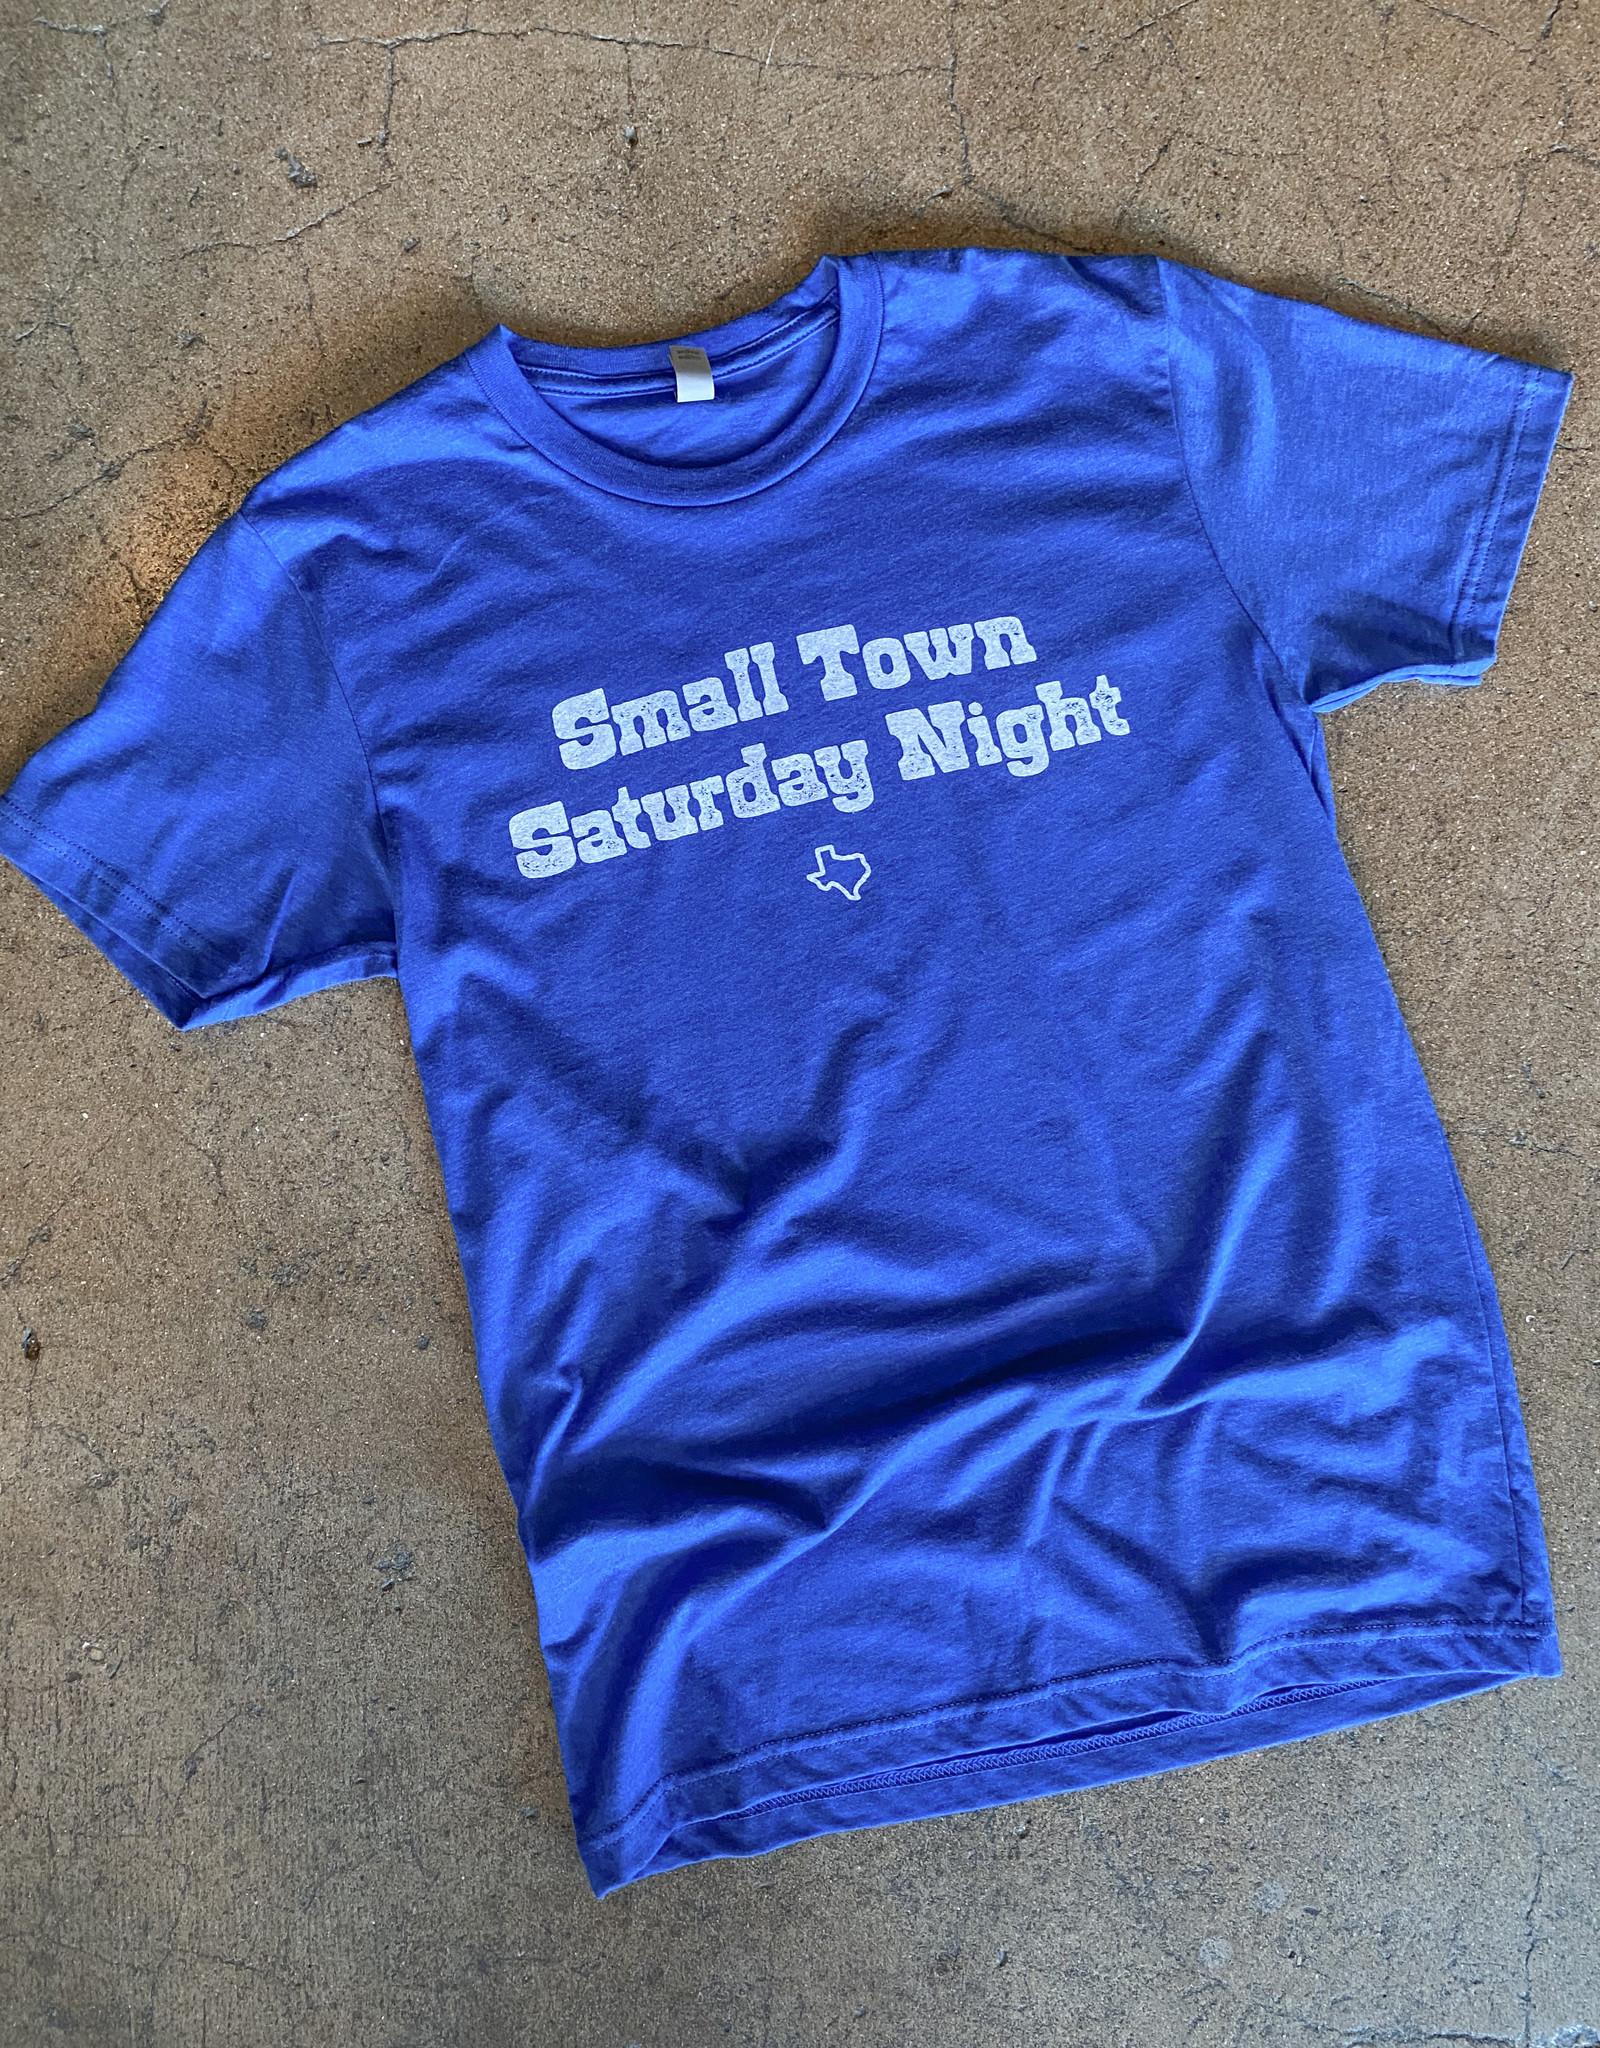 Small Town Saturday Night Tee